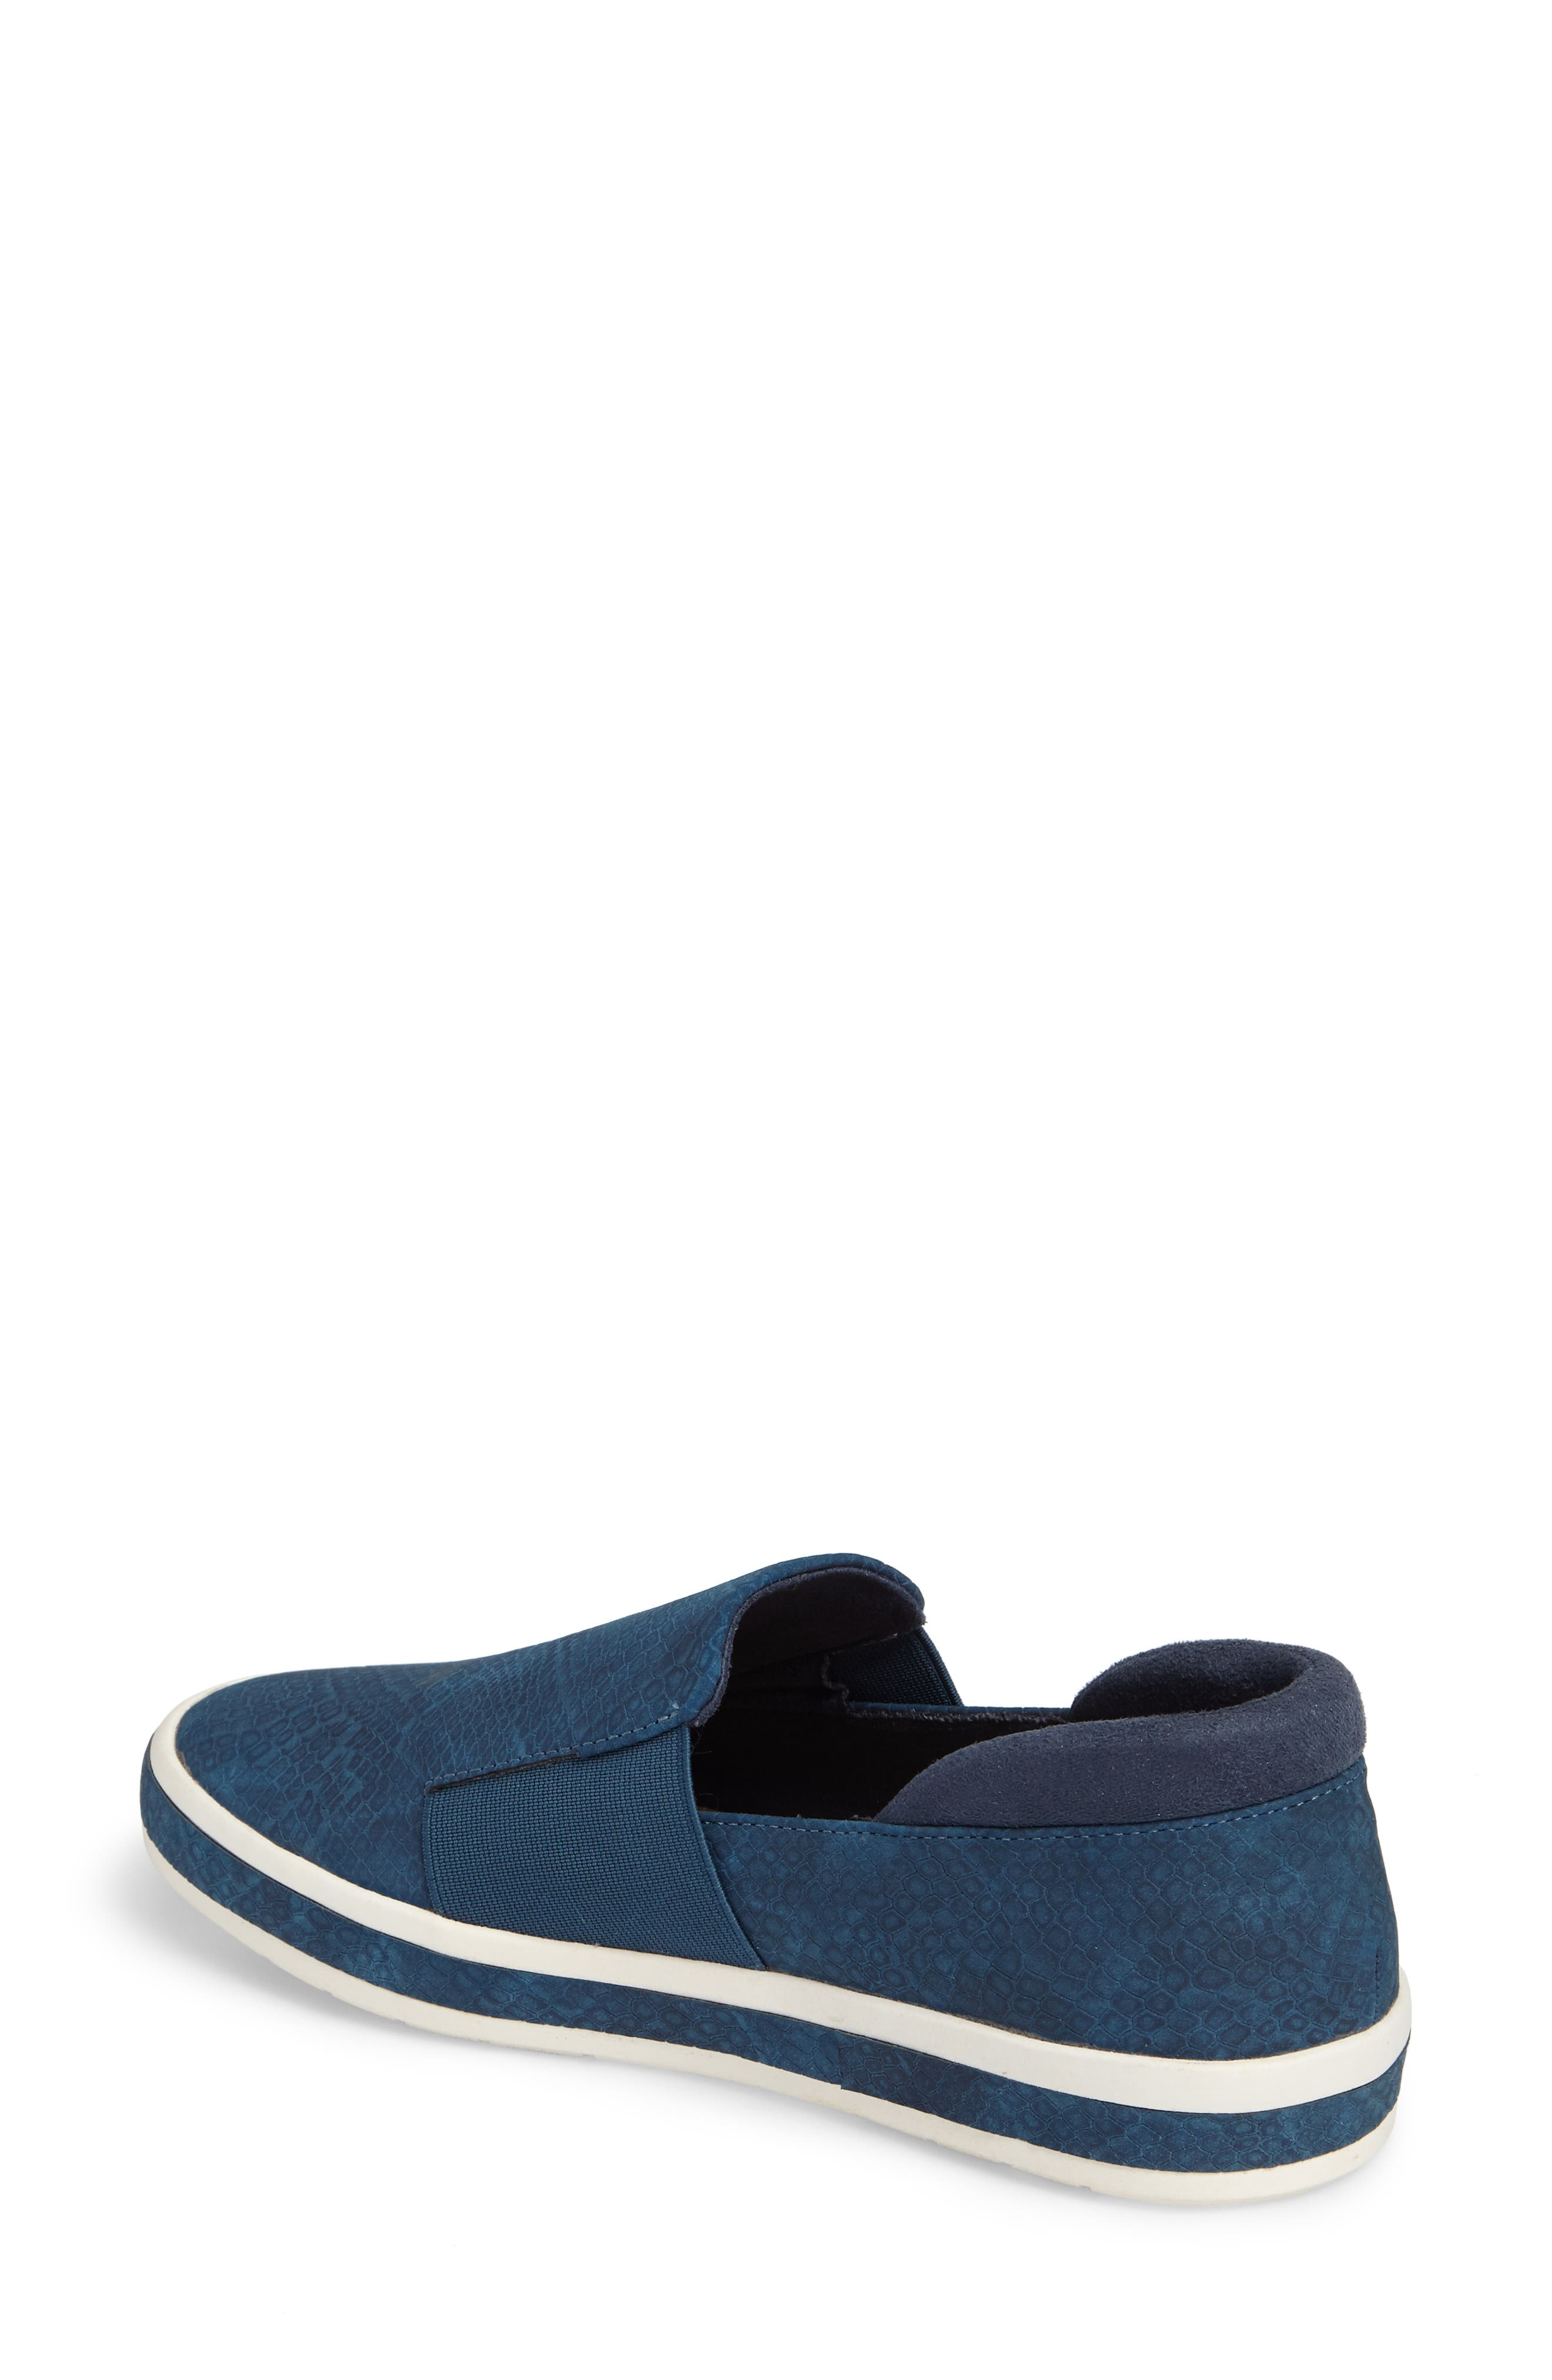 Switch II Slip-On Sneaker,                             Alternate thumbnail 2, color,                             NAVY PRINTED LEATHER